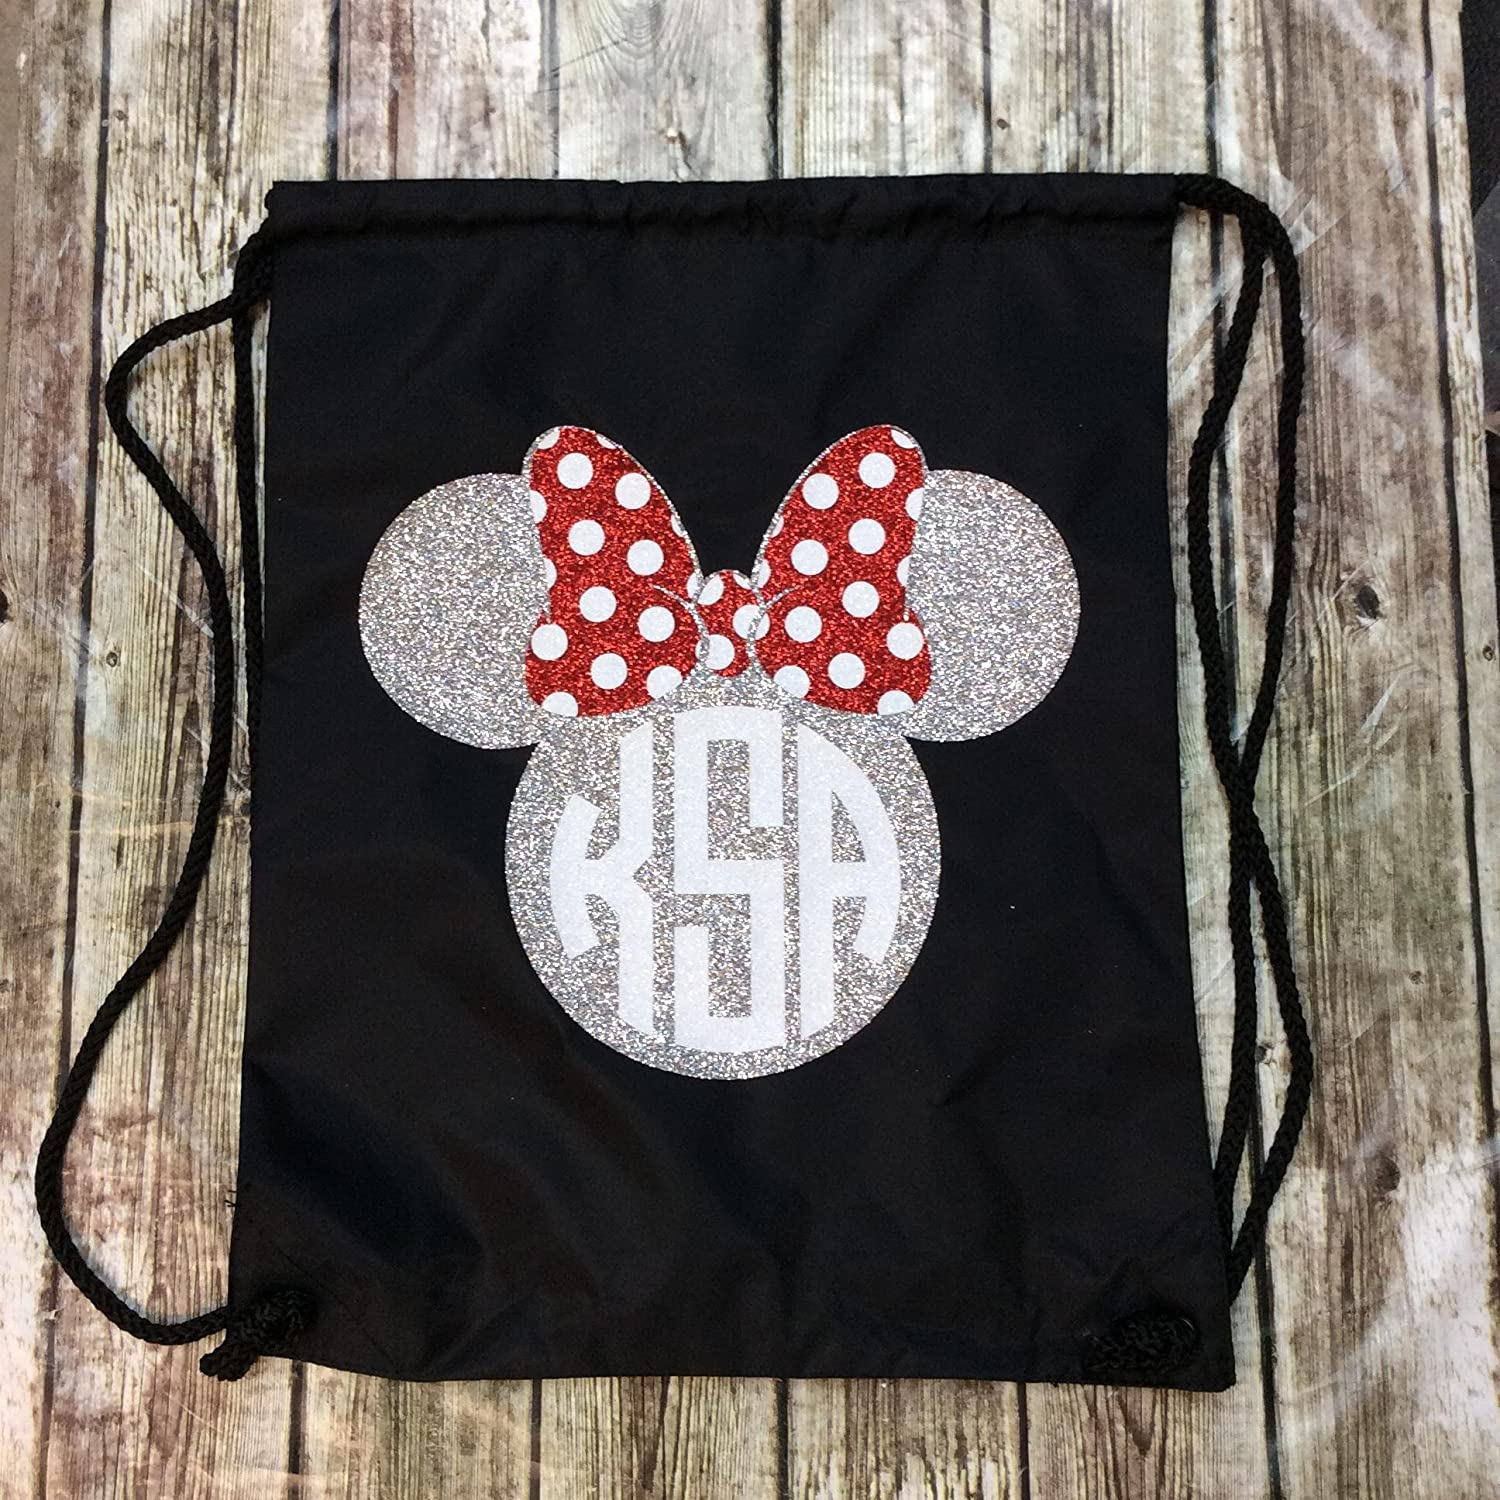 Handmade Personalized Disney drawstring backpack